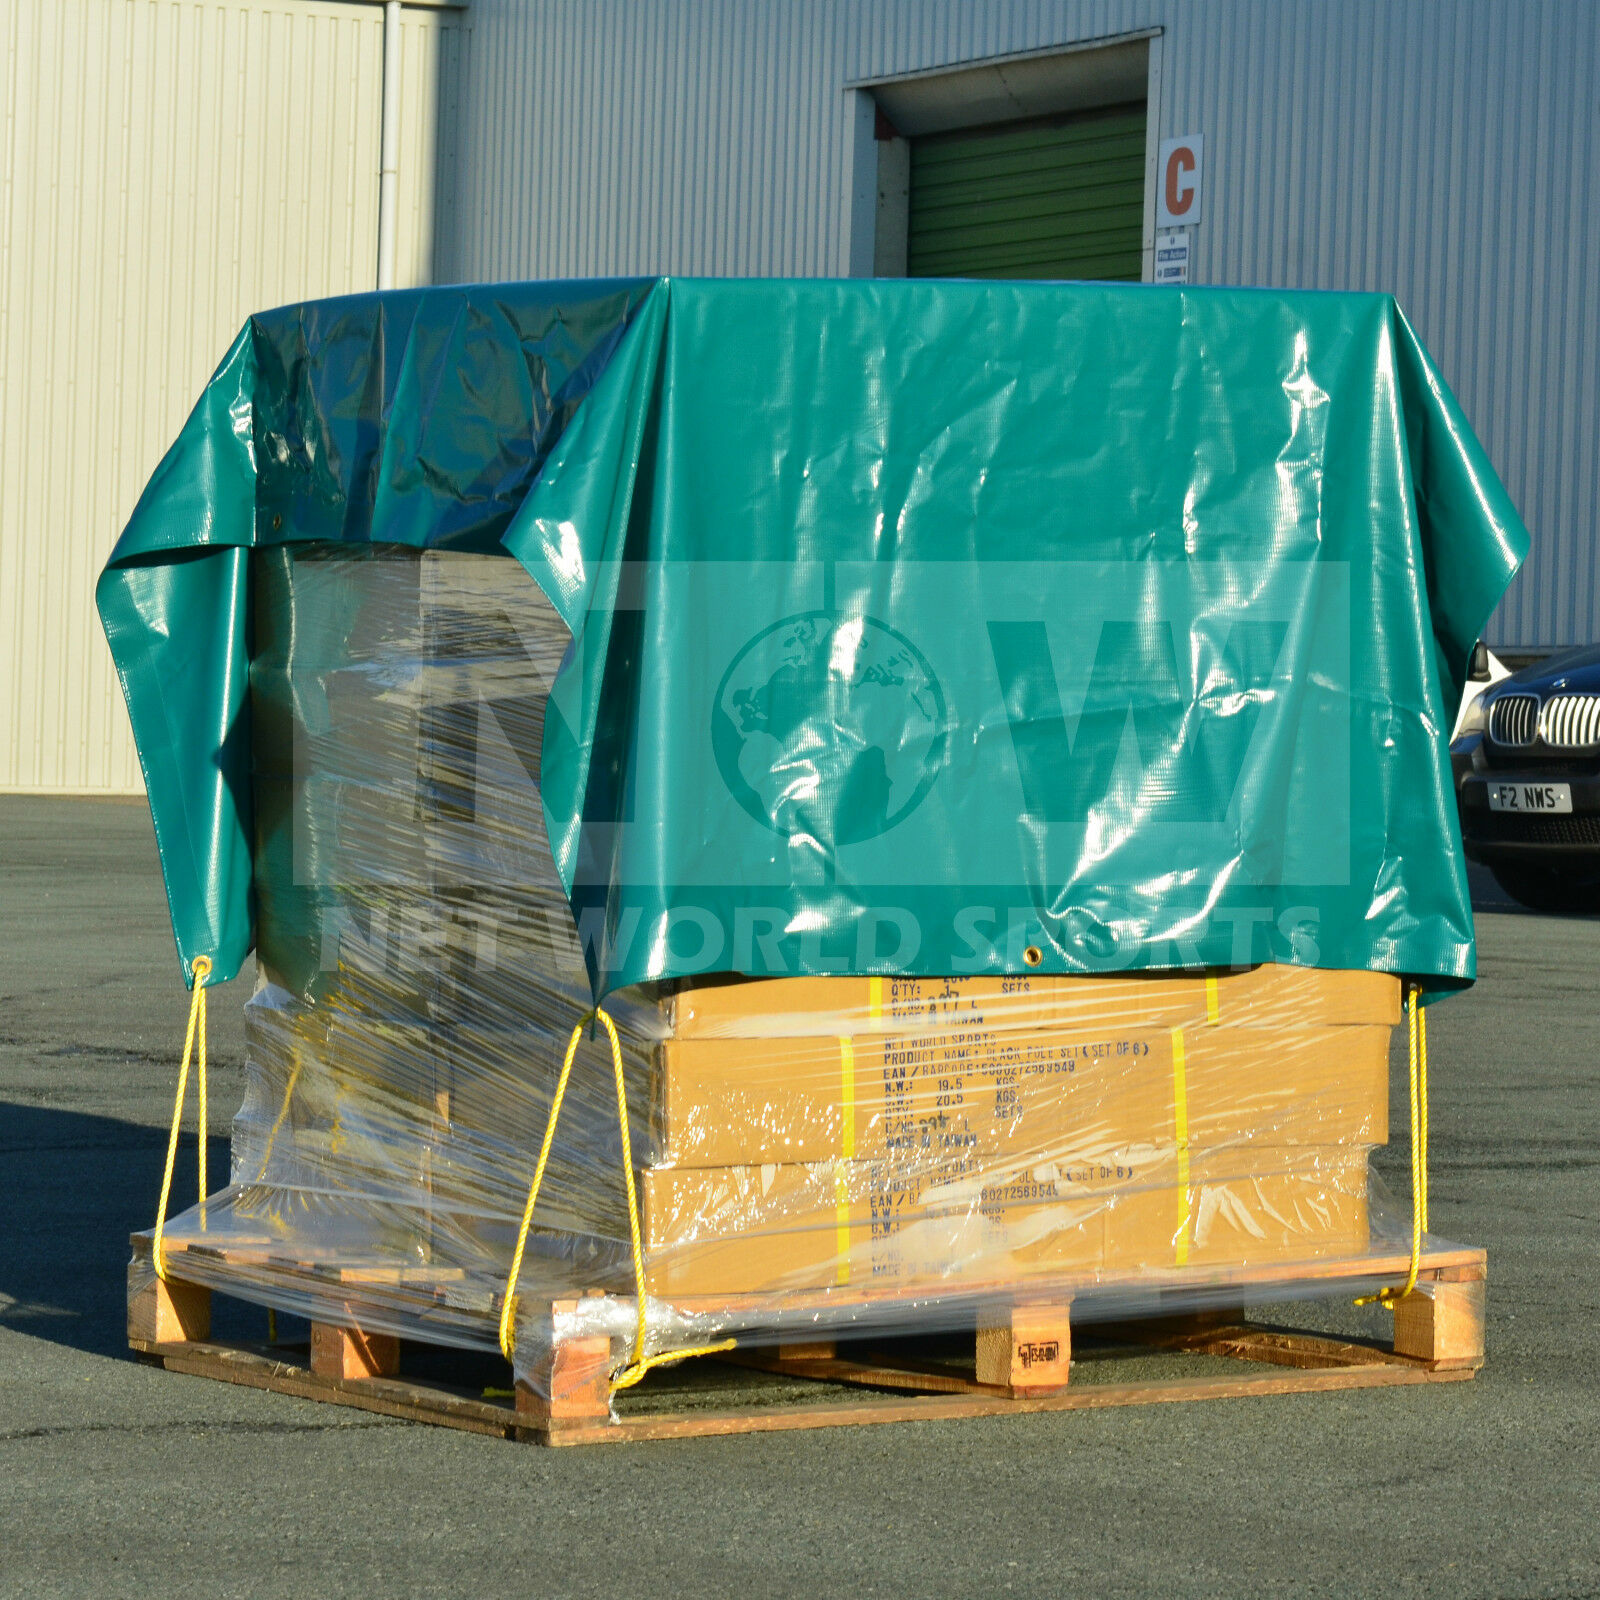 Heavy Duty Tarpaulins [300gsm   9oz] – All Sizes from 8ft x 5ft to 25ft x 25ft